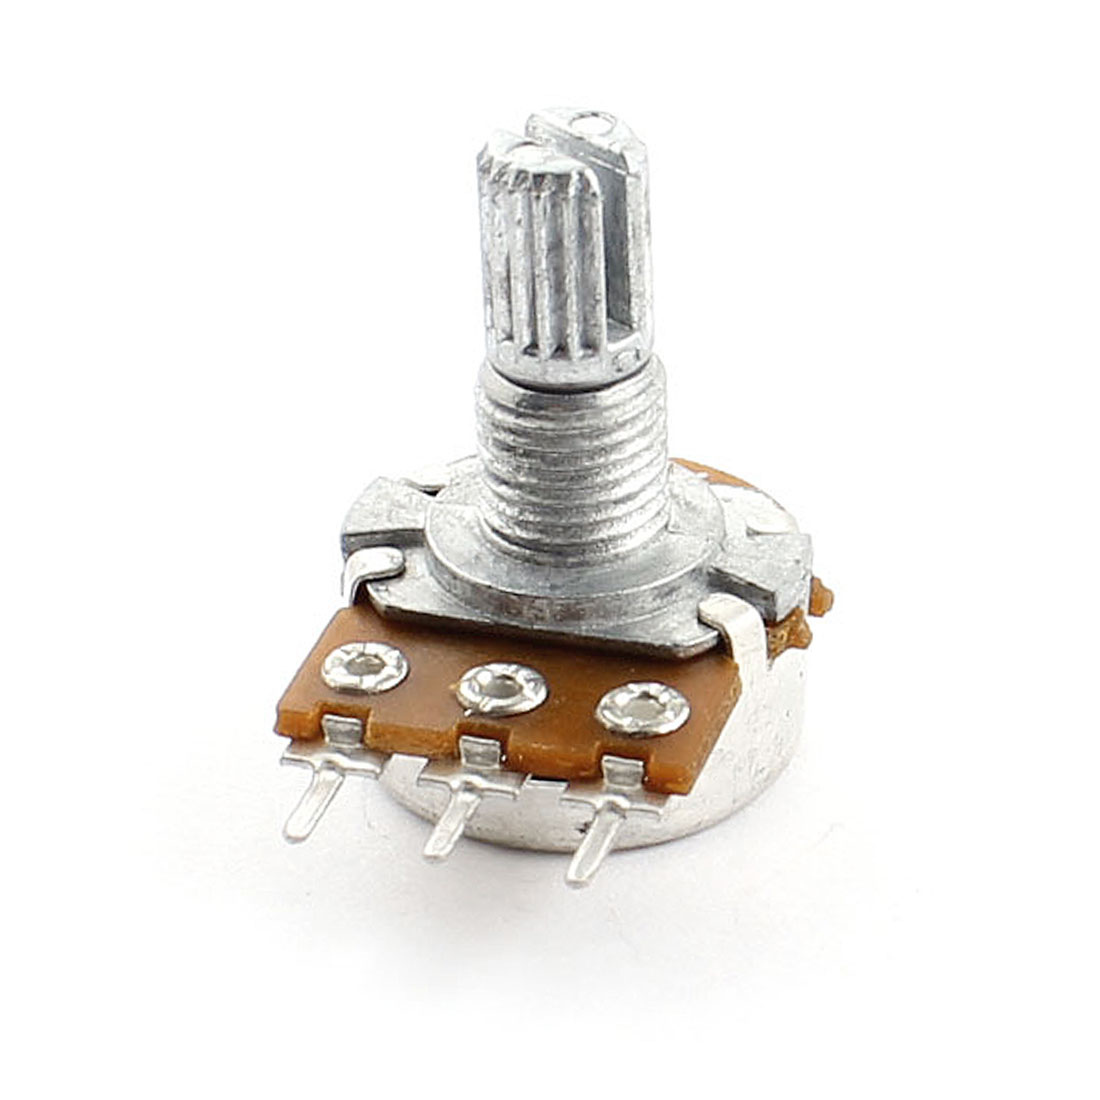 B10K 10K Ohm 6mm Dia Knurled Shaft 7mm Thread 3Pin Through Hole Mount Linear Type B Rotary Taper Potentiometer